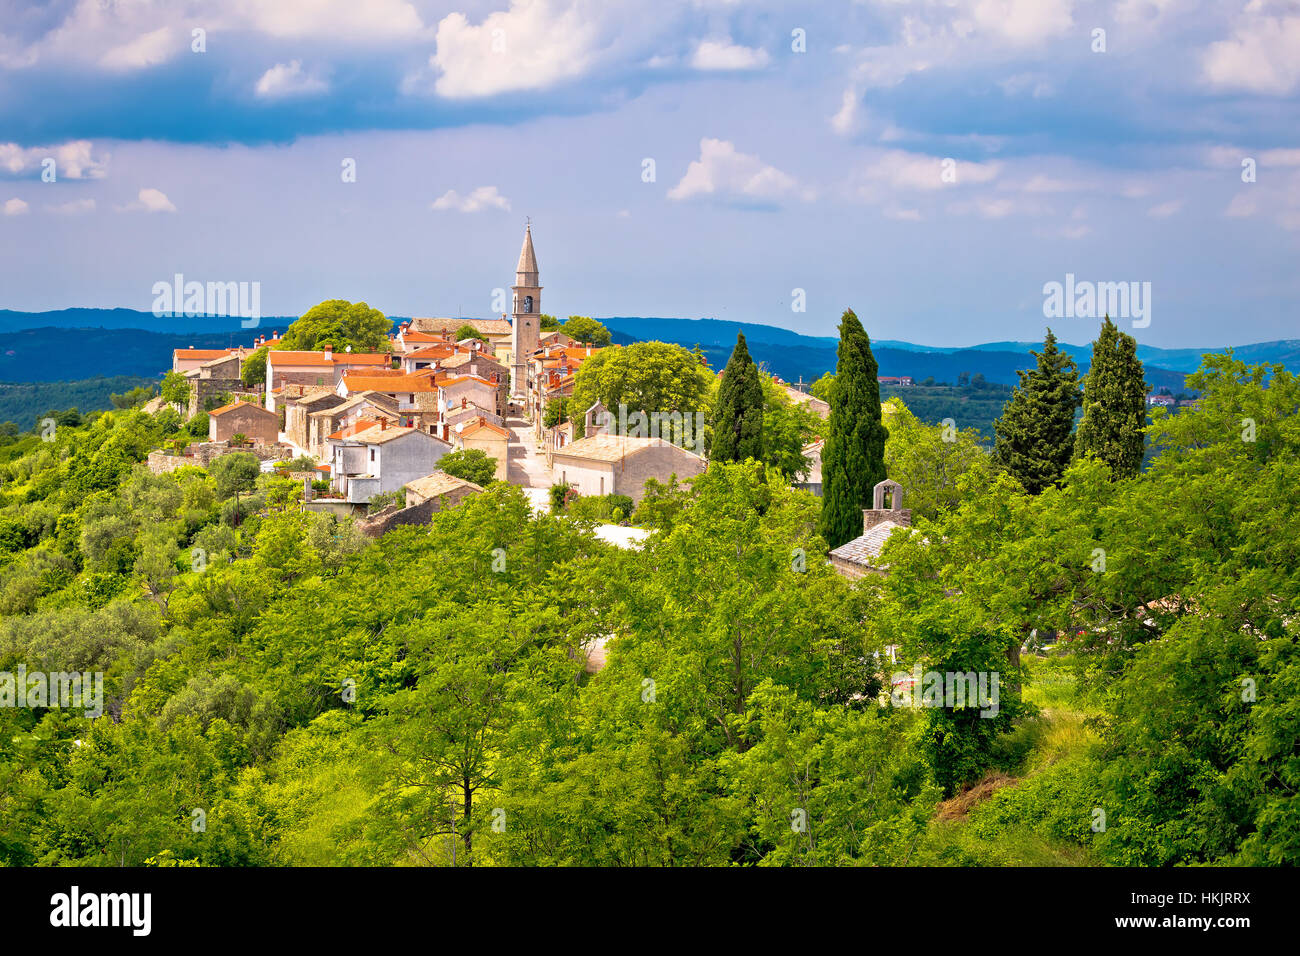 Village of Draguc in green landscape, inland Istria, Croatia - Stock Image